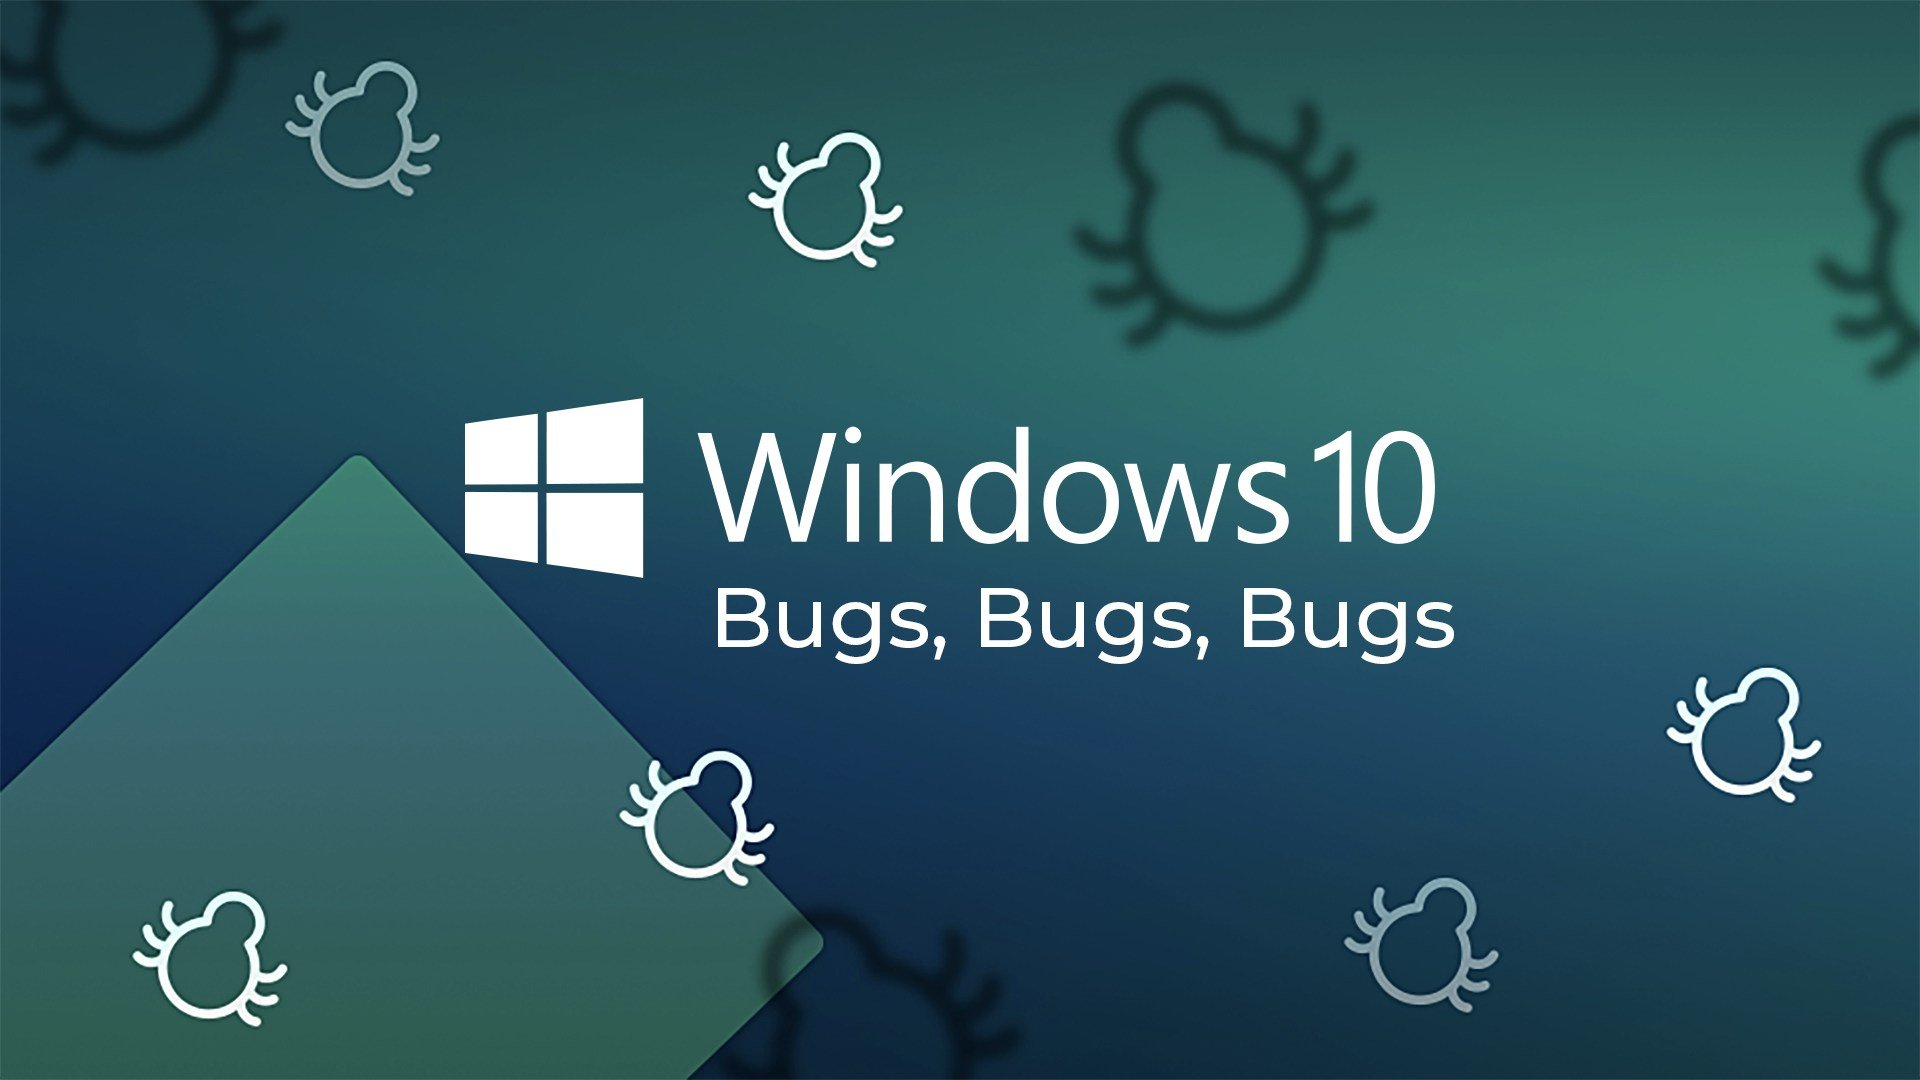 Microsoft, Betriebssystem, Windows 10, Update, Fehler, Bug, Bugs, Windows 10 Update, Windows 10 bugs, Windows 10 Bug, Windows 10 Fehler, Bugs bugs bugs